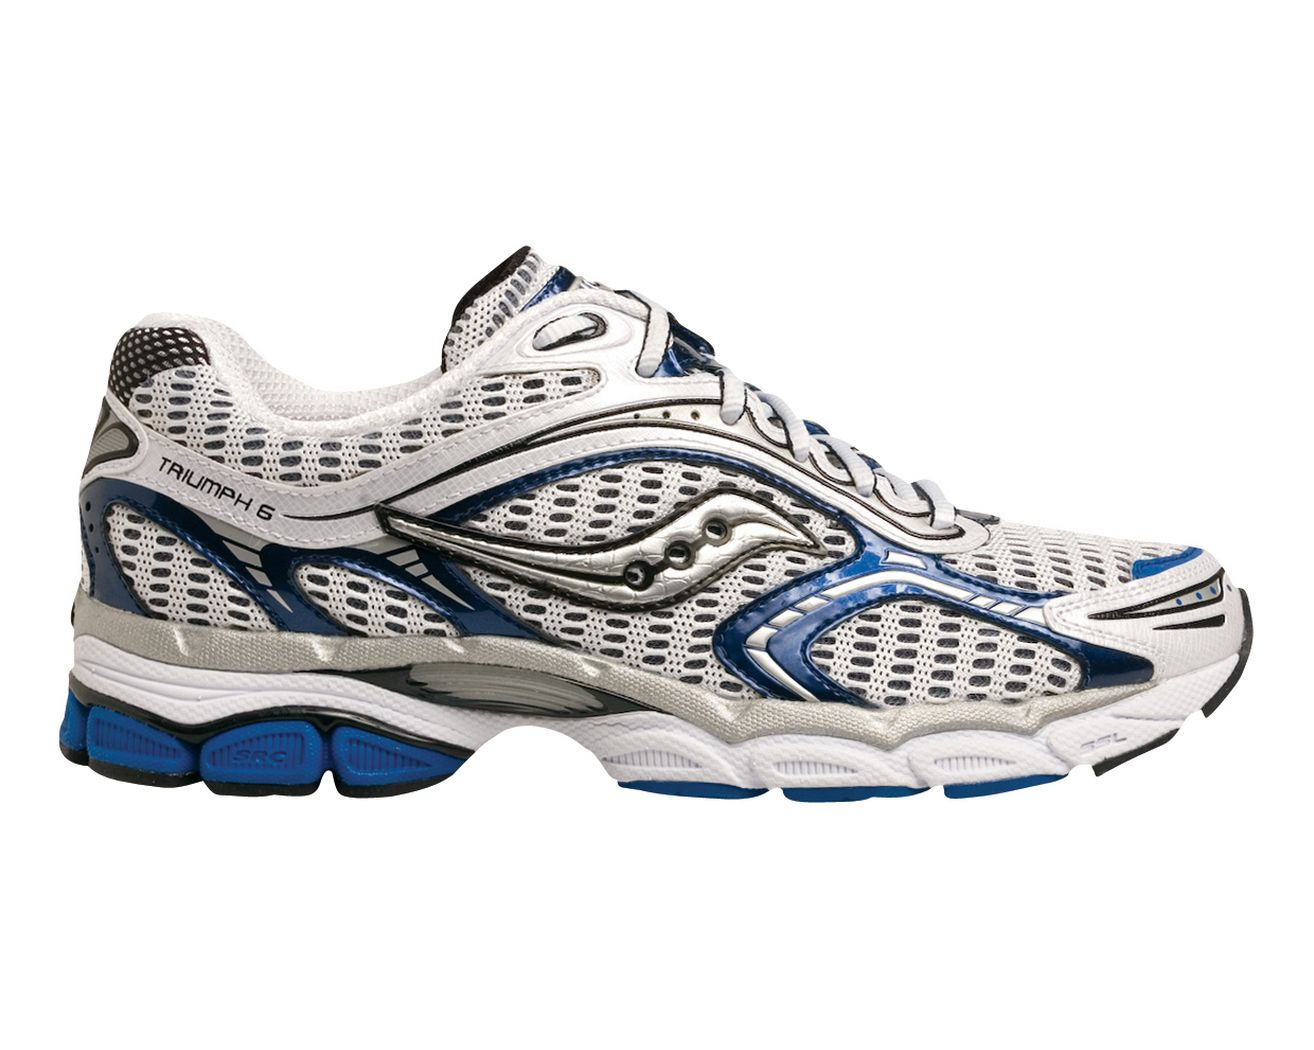 mens saucony progrid triumph 6 running shoe at road runner sports